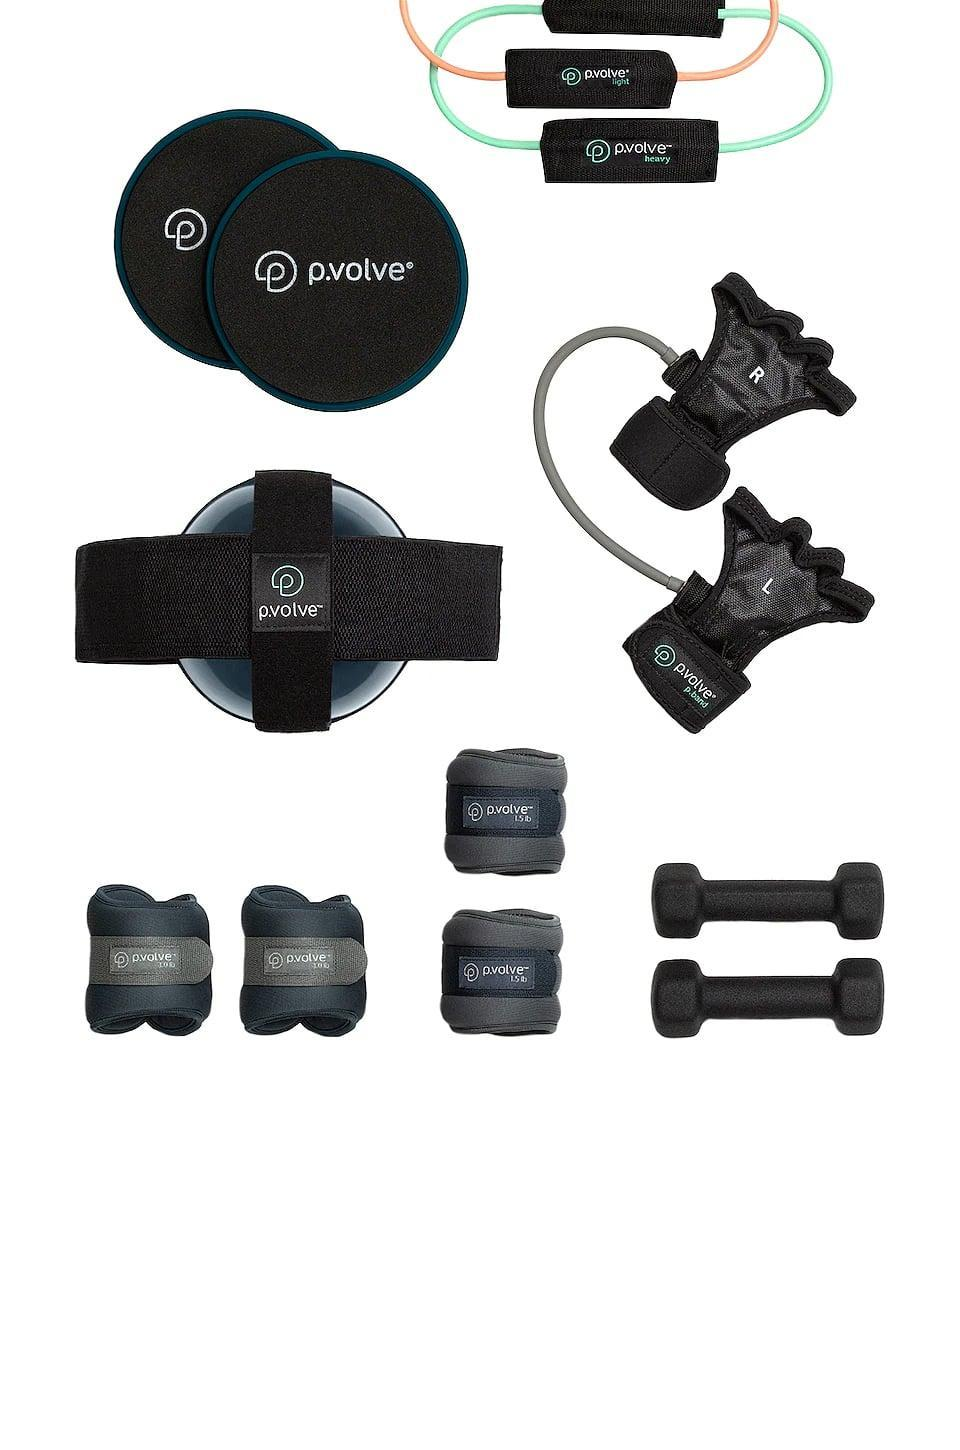 <p>If you're looking for an all-in-one set, this <span>P.volve Ultimate P.volve Package</span> ($190) has been a game-changer for me. It consists of a set of hand weights, two sets of ankle weights, two resistance bands, gliders, and the method's proprietary P.ball and P.band. P.volve has been a workout I've returned to over and over again, but you can also use this equipment for other exercises, and truthfully, it's got everything covered.</p>